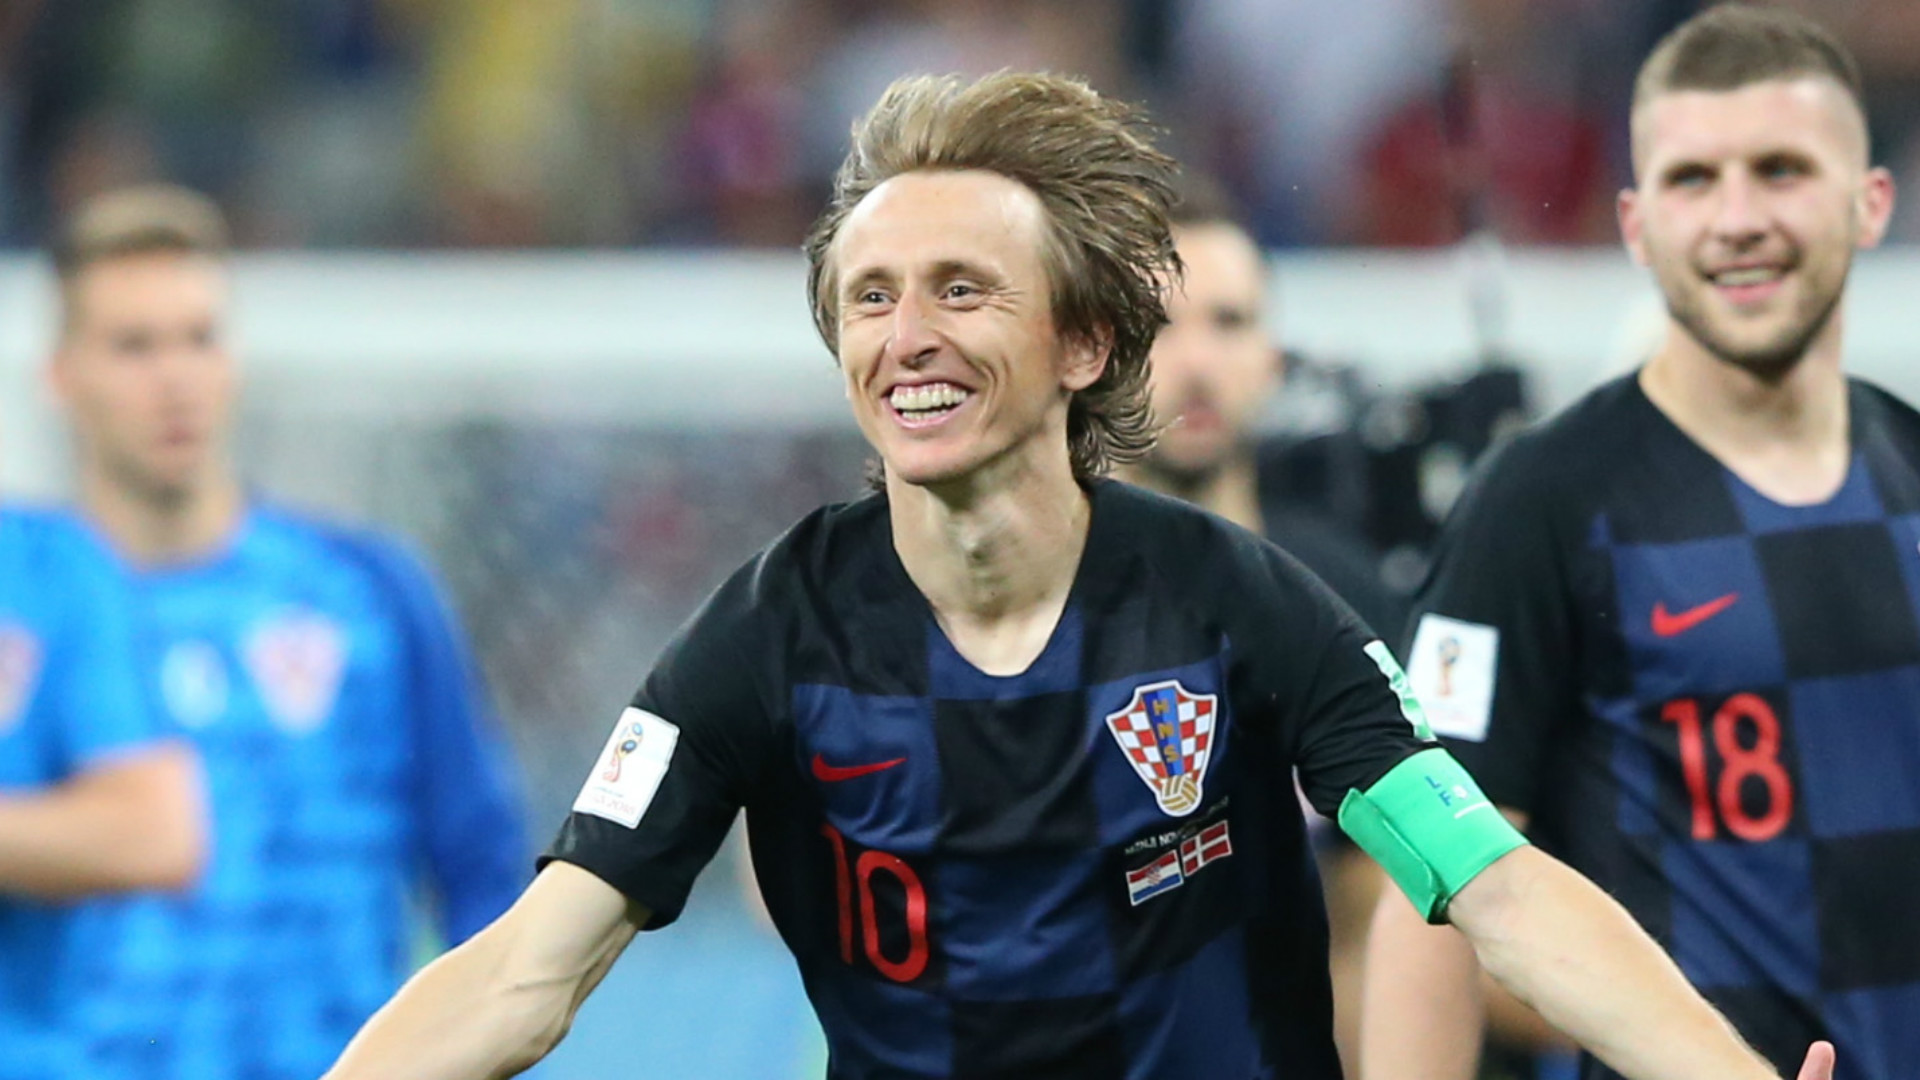 Luka Modric proud to prove wrong English media who 'underestimated' Croatia